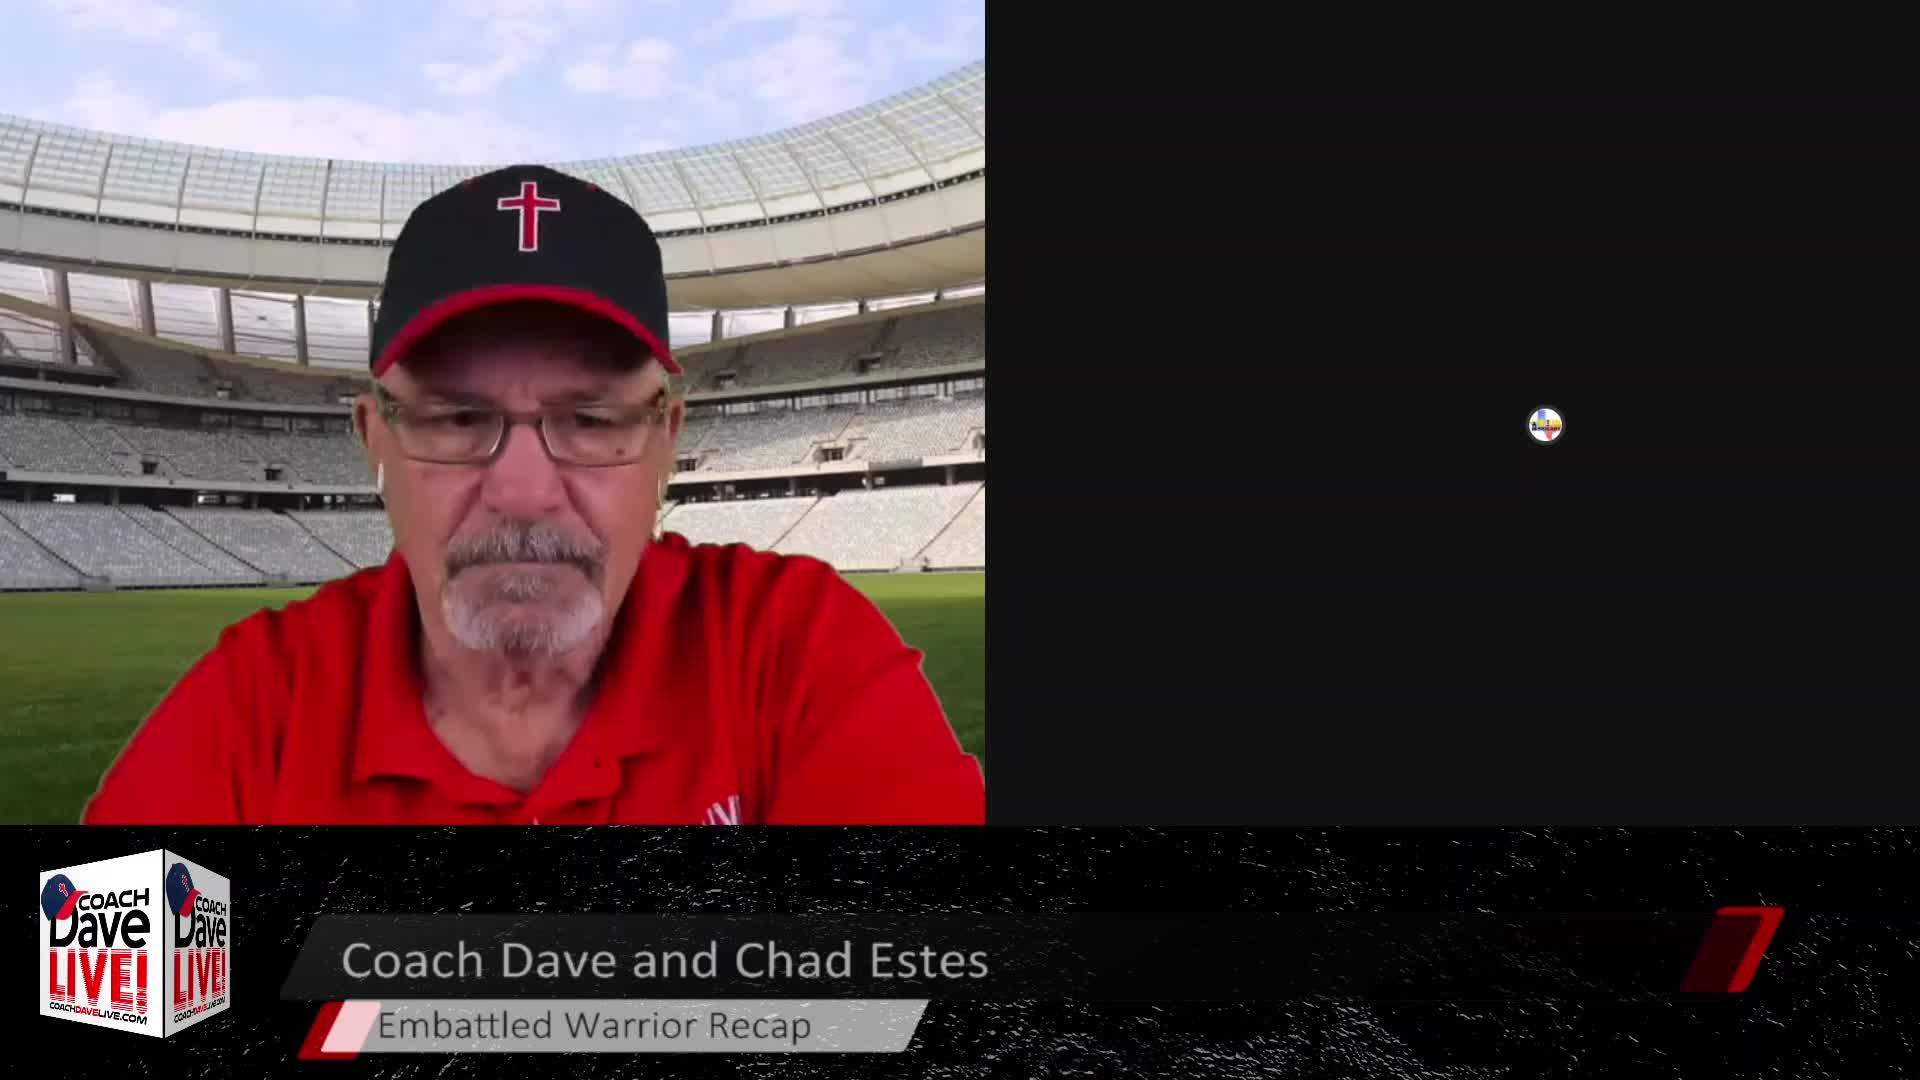 Coach Dave LIVE | 4-12-2021 | SORRY KIDS, THE ADULTS HAVE LIED TO YOU